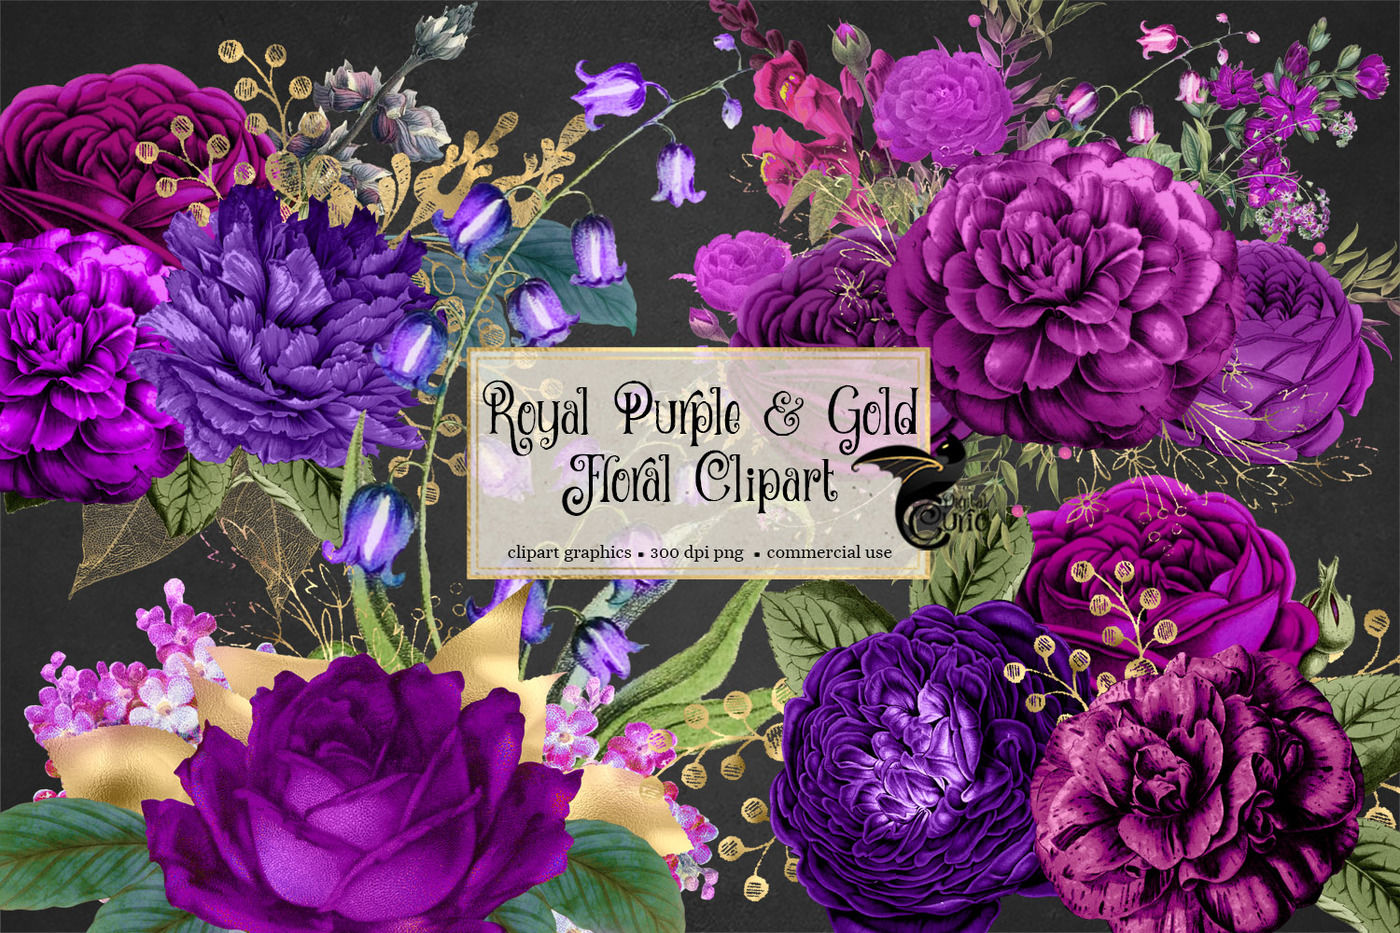 Royal Purple and Gold Floral clipart By Digital Curio